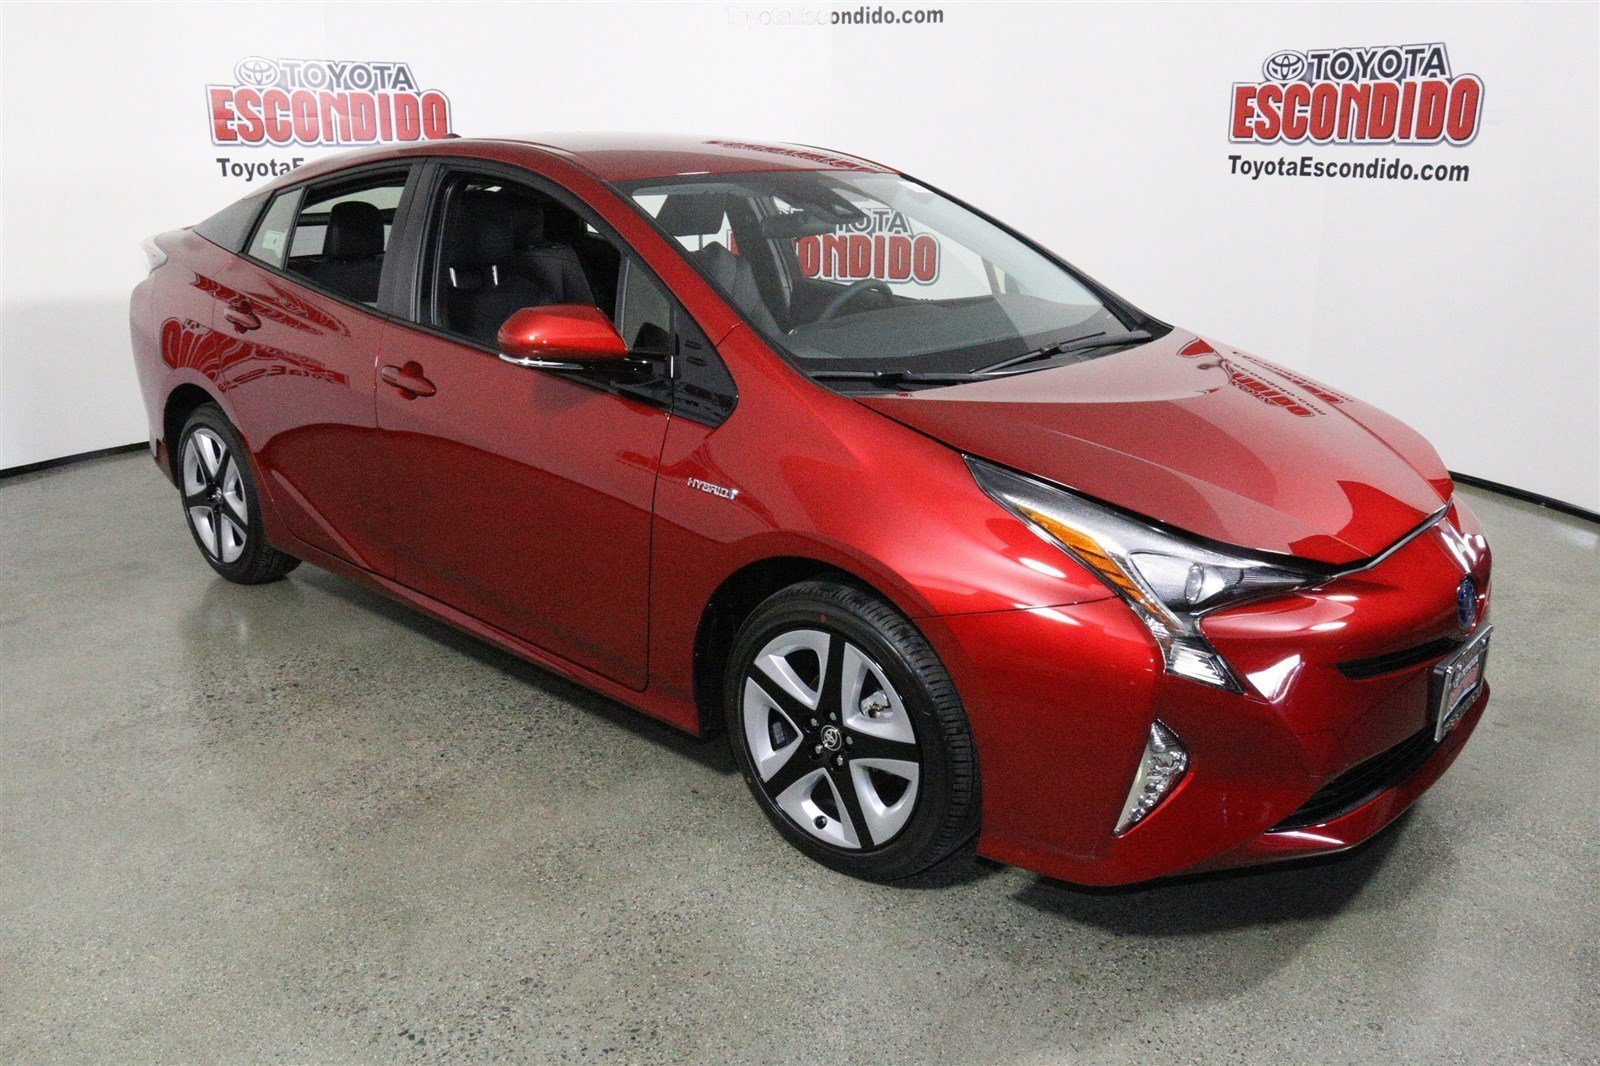 new 2017 toyota prius three touring hatchback in escondido h3529910 toyota escondido. Black Bedroom Furniture Sets. Home Design Ideas